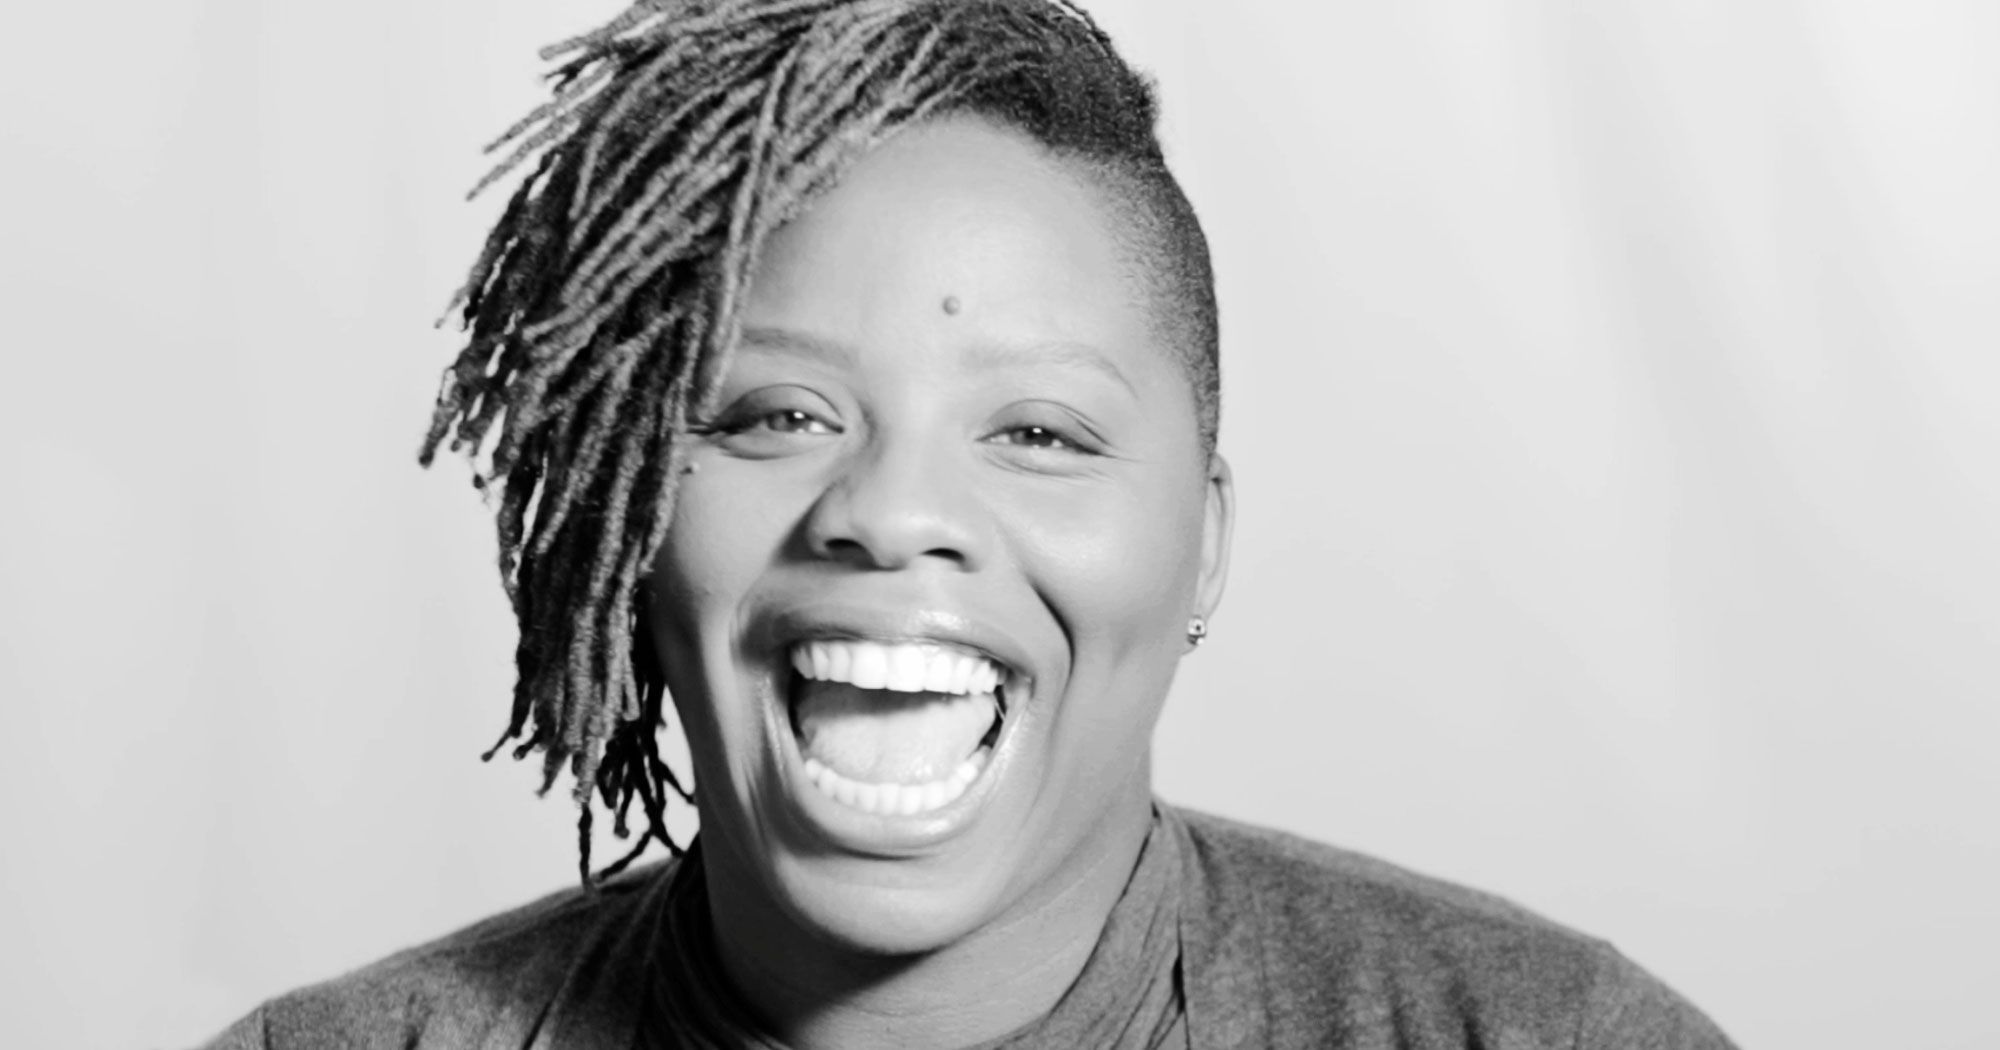 Patrisse Cullors - Co-Founder, Black Lives Matter; Artist, Author, Visionary